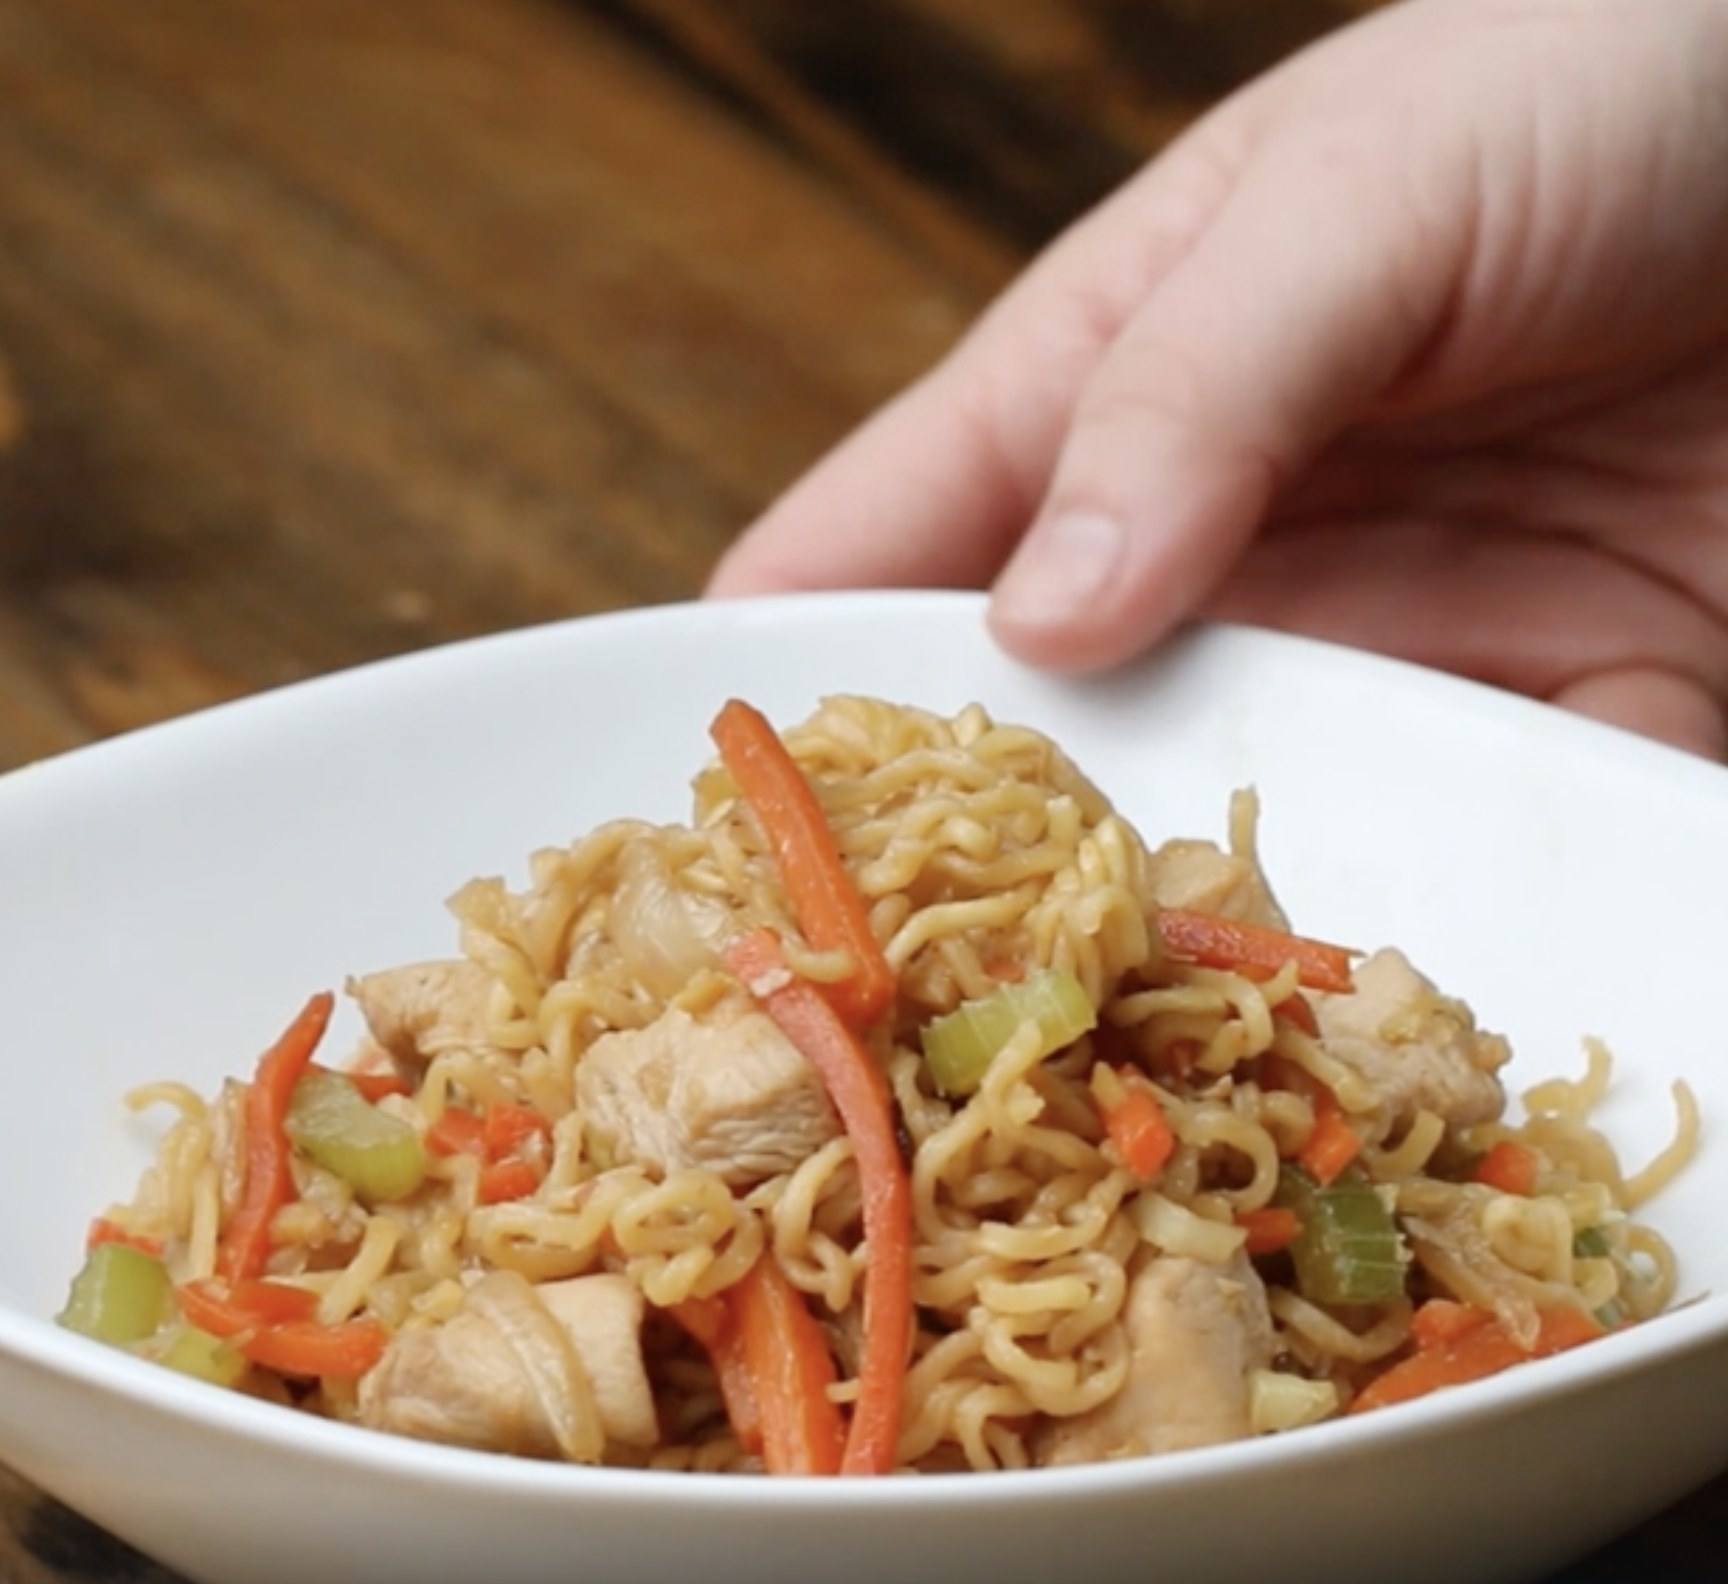 A bowl of chicken chow mein